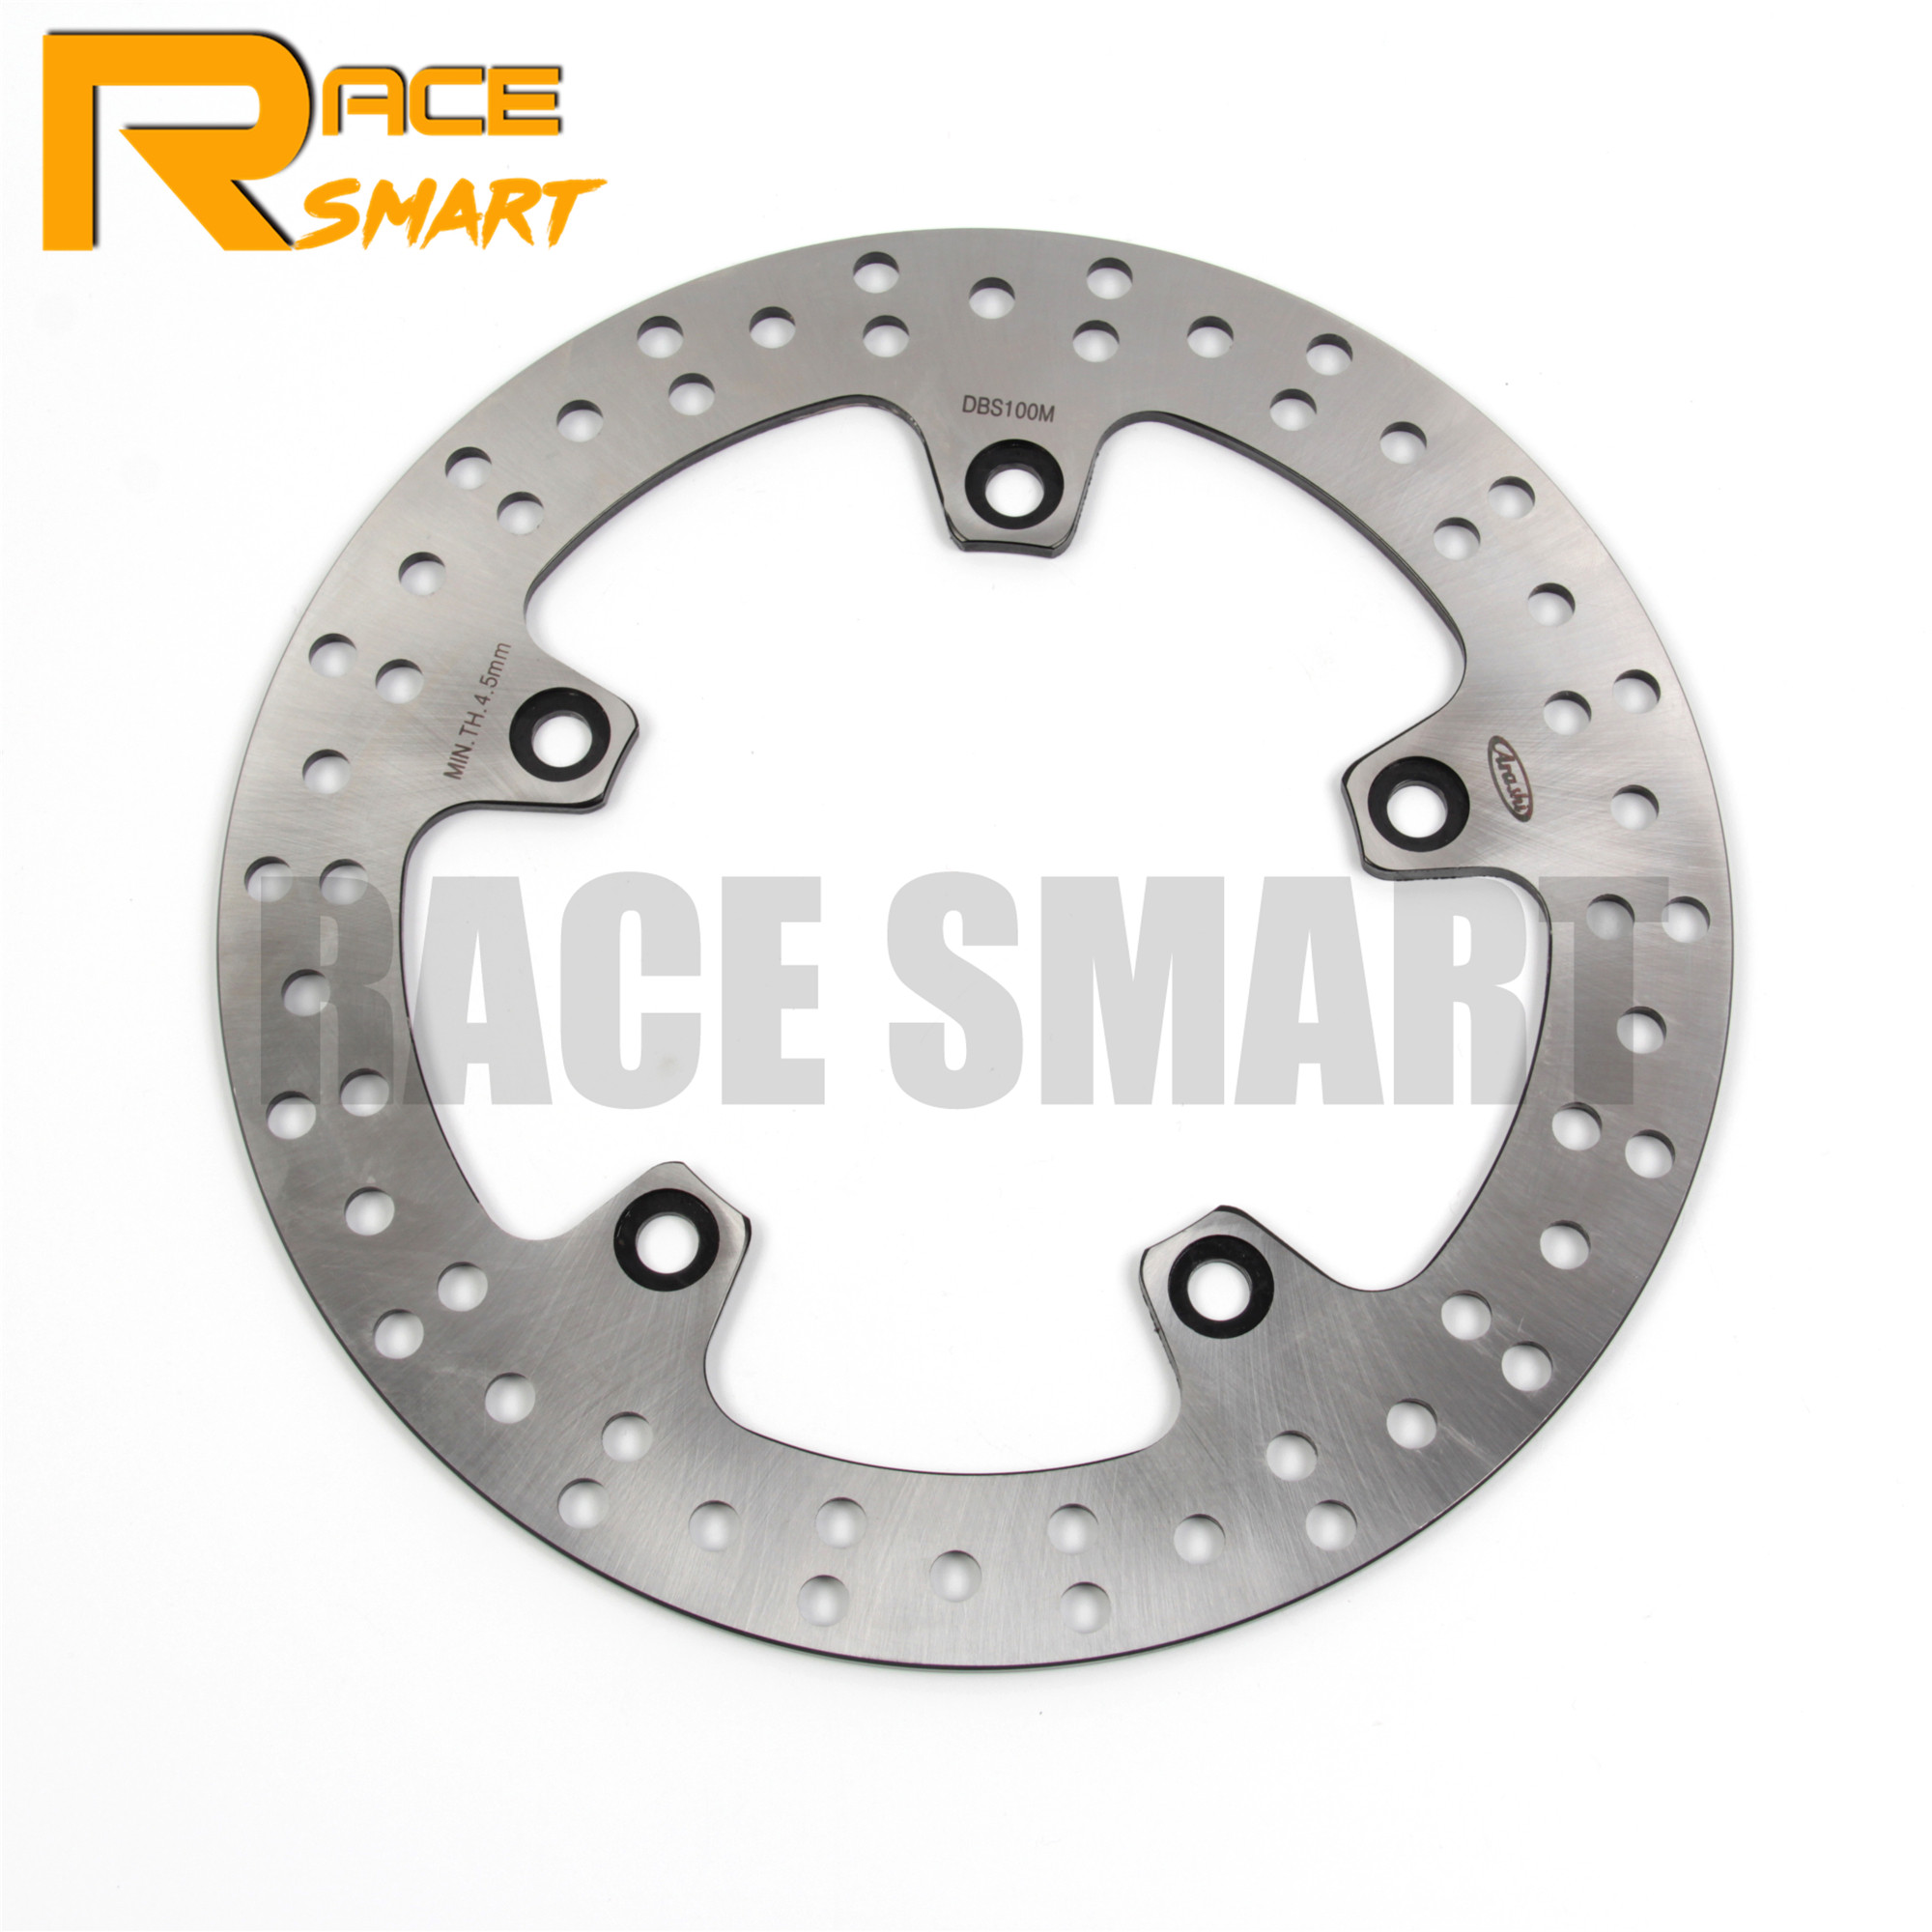 BMW R 1200 GS RT ST R S HP2 conical stainless steel bolt kit motor front cover